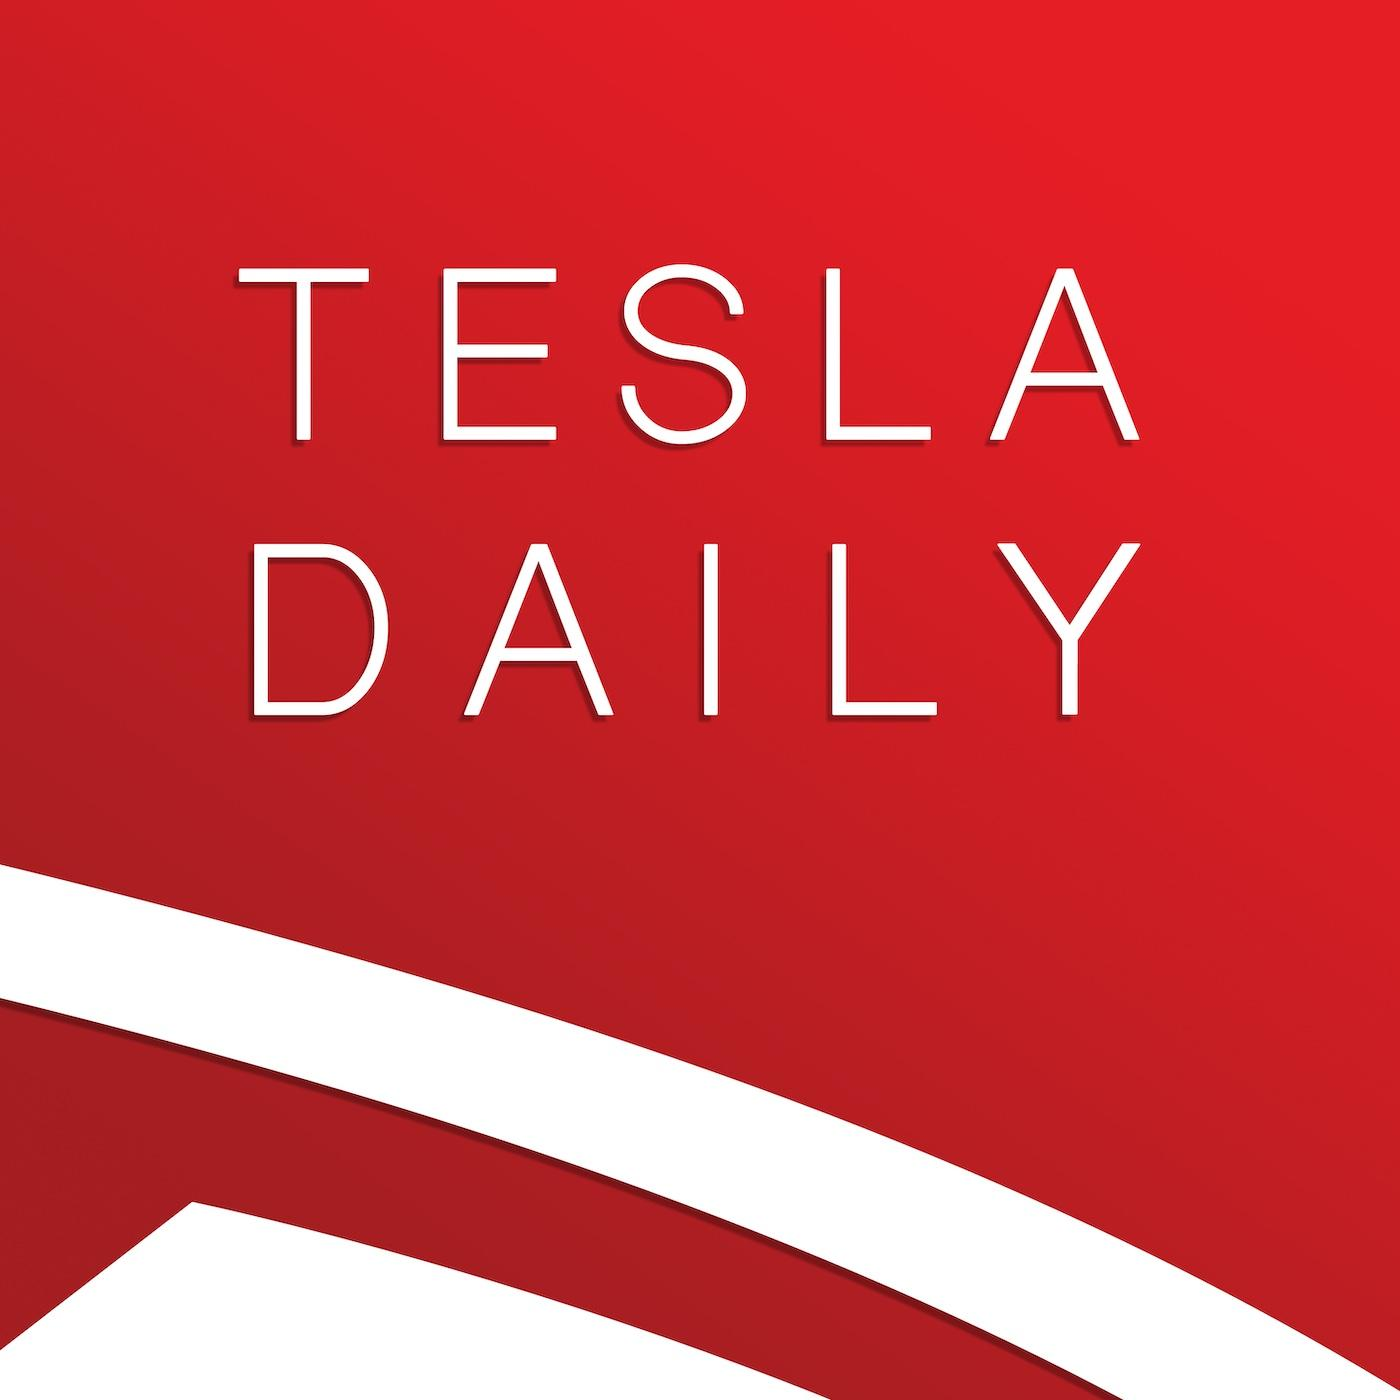 JD Power, Delivery Expectations Rise, Analyst Notes, Musk Tweets, Amazon + Zoox (06.26.20)